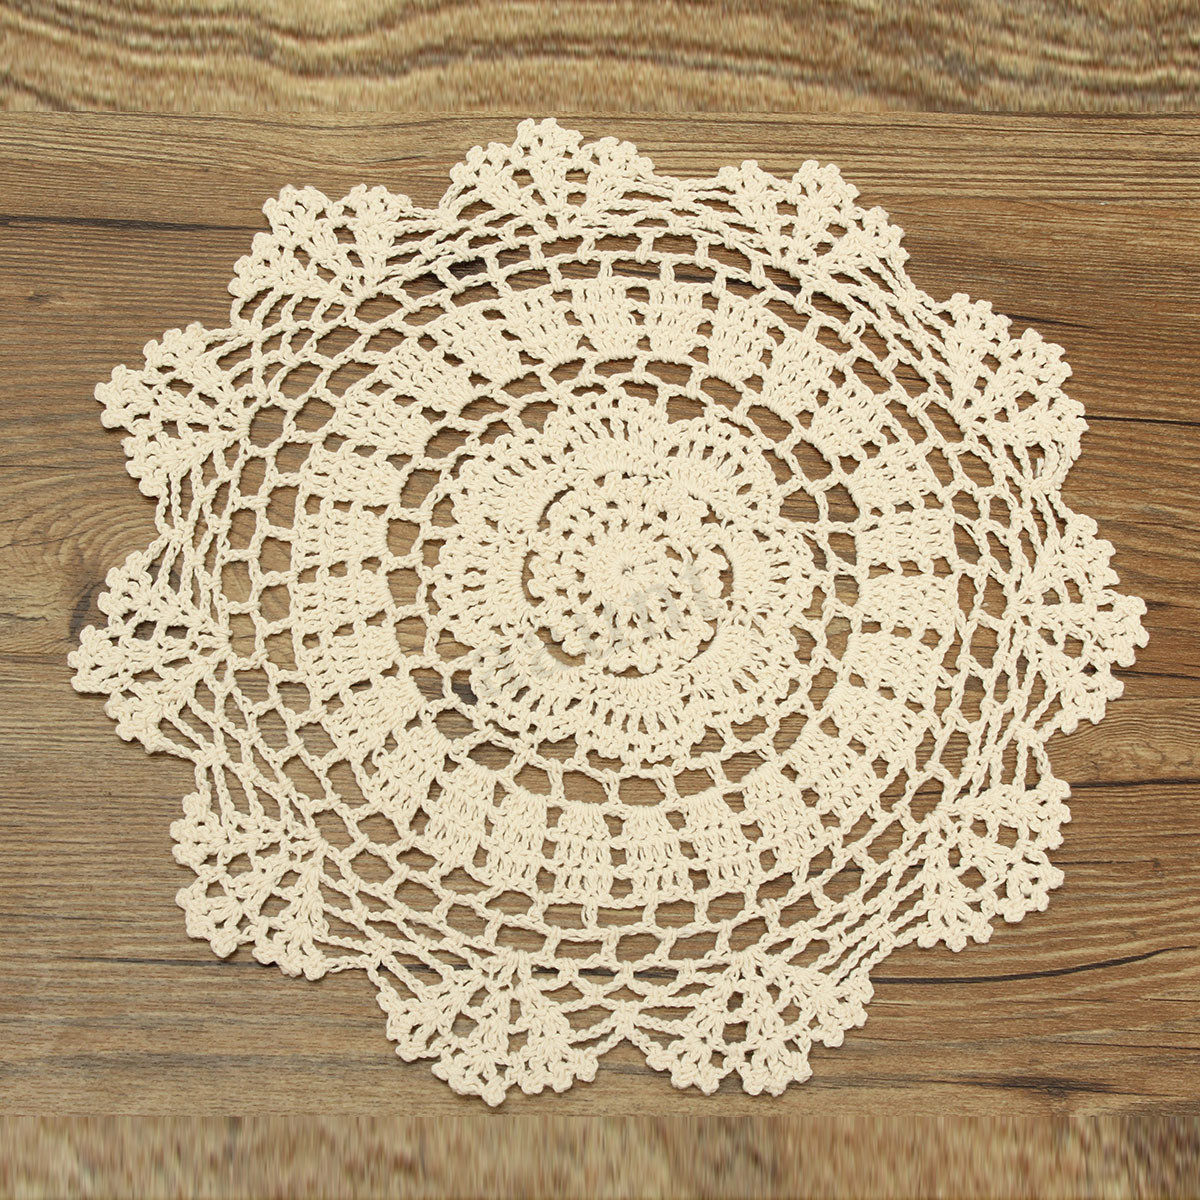 Vintage Crochet Doilies Fresh Hand Crocheted Cotton Yarn Round Lace Doily Mat Vintage Of New 45 Models Vintage Crochet Doilies